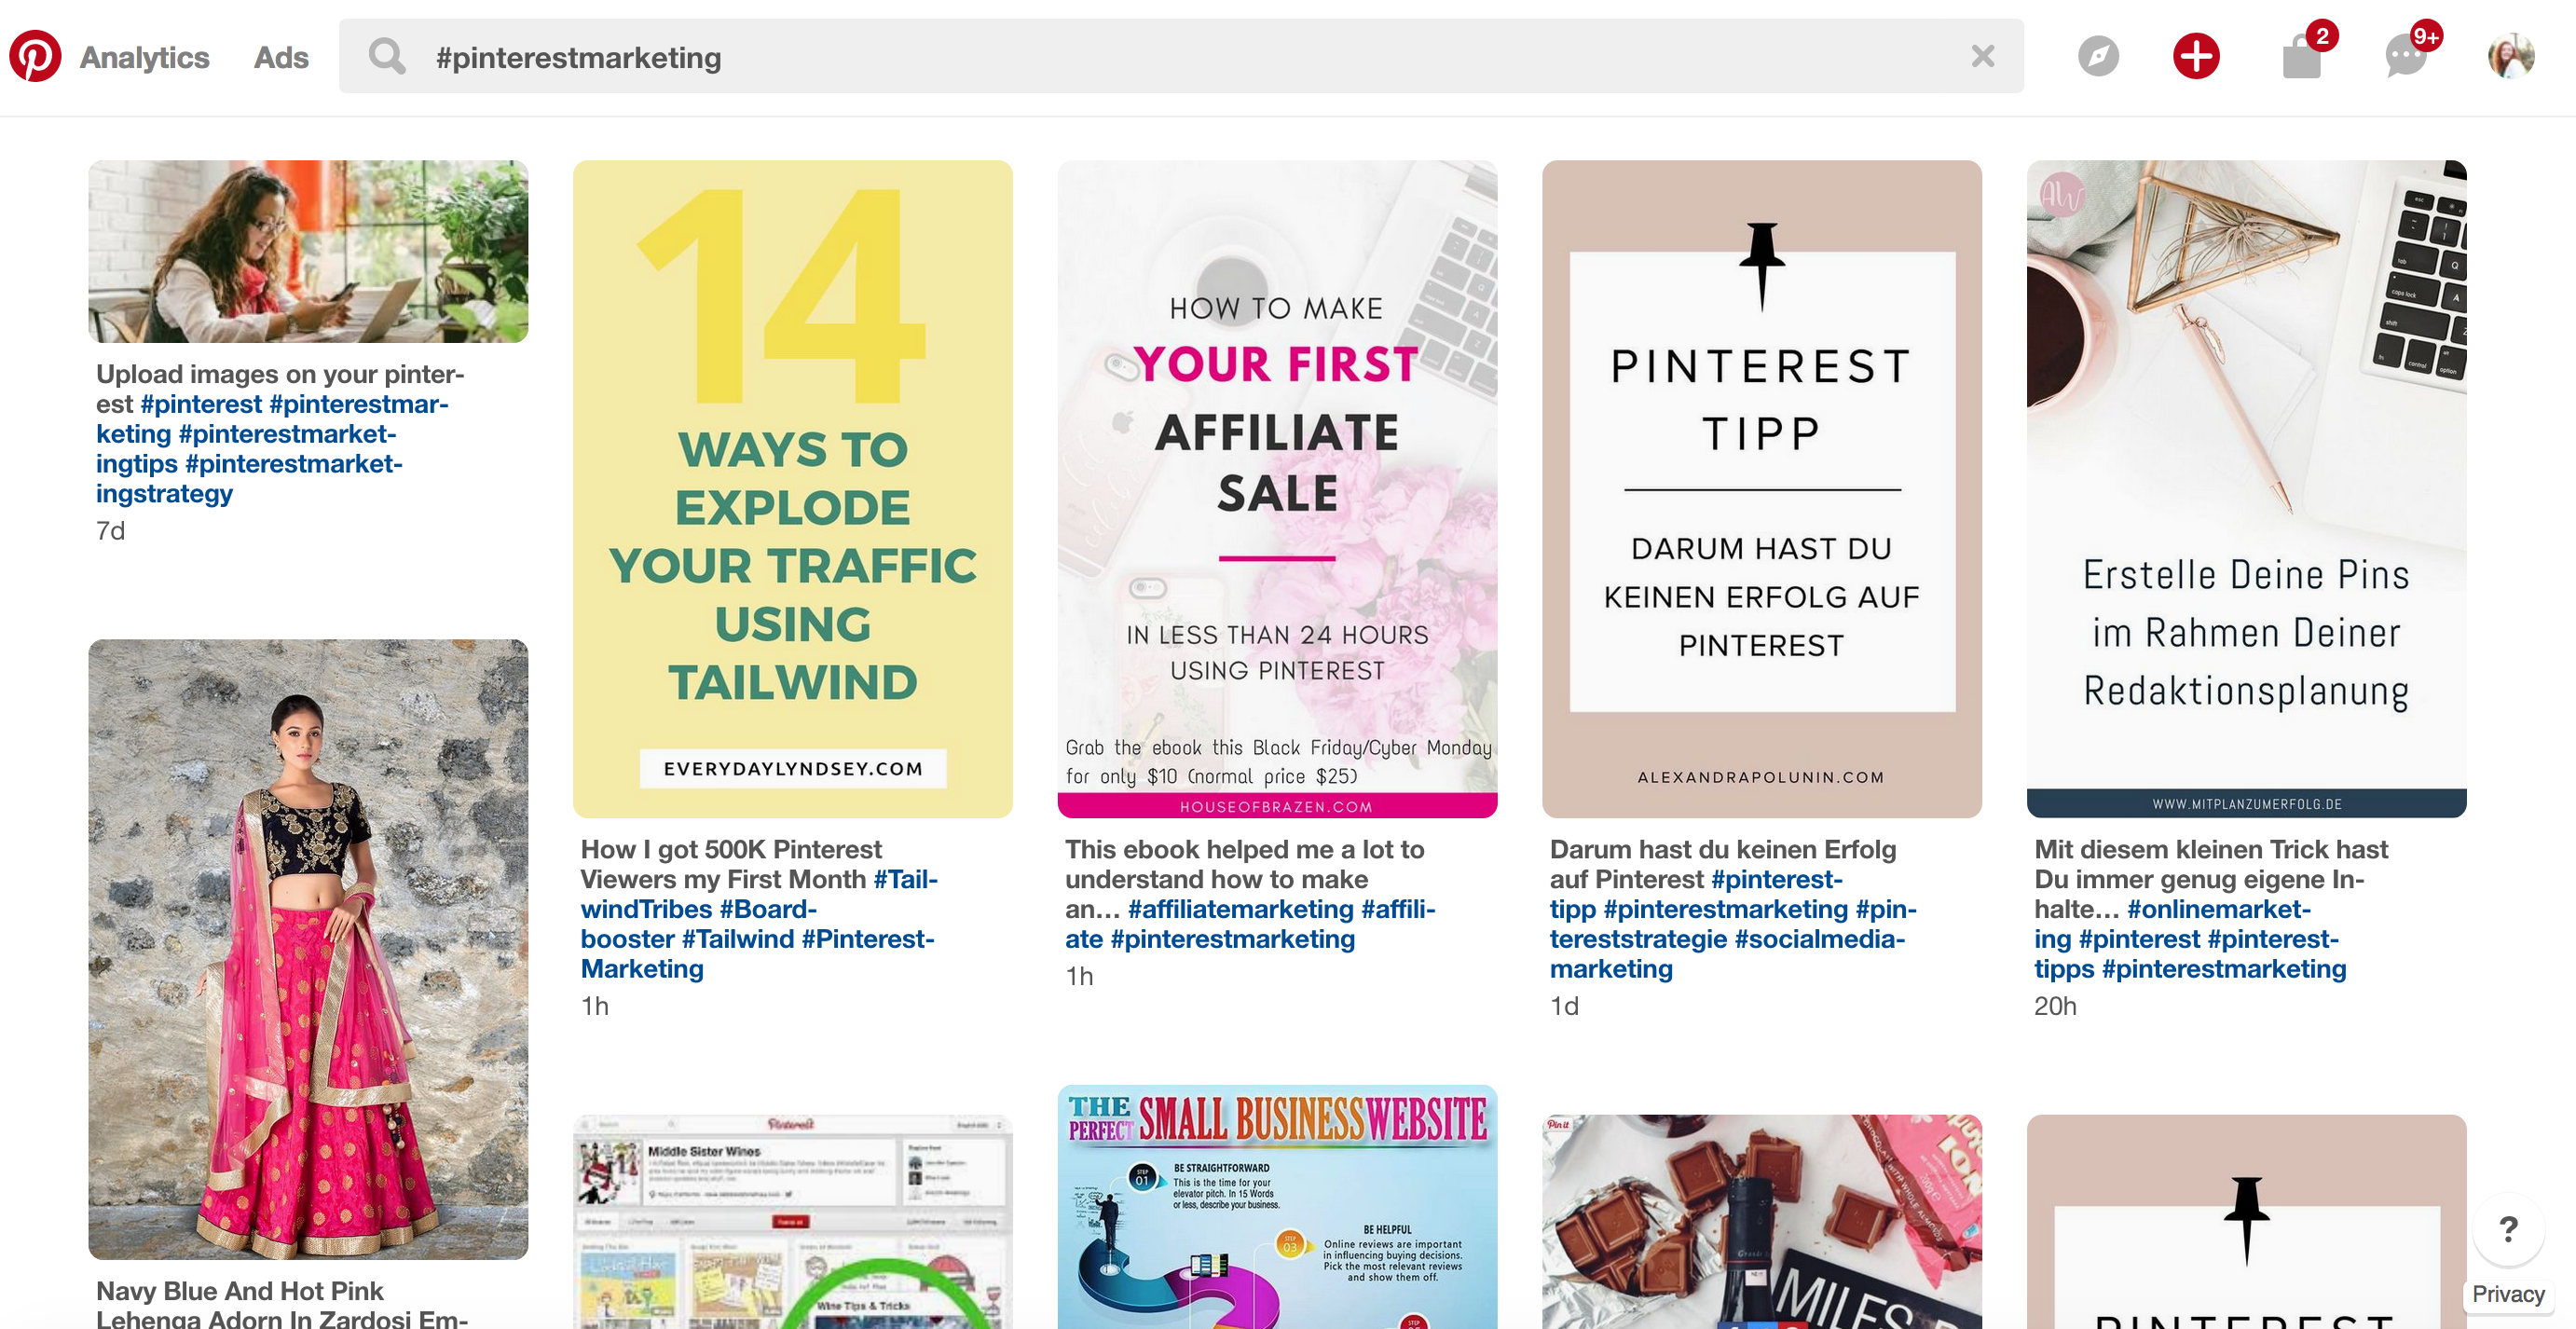 Hashtag search on Pinterest